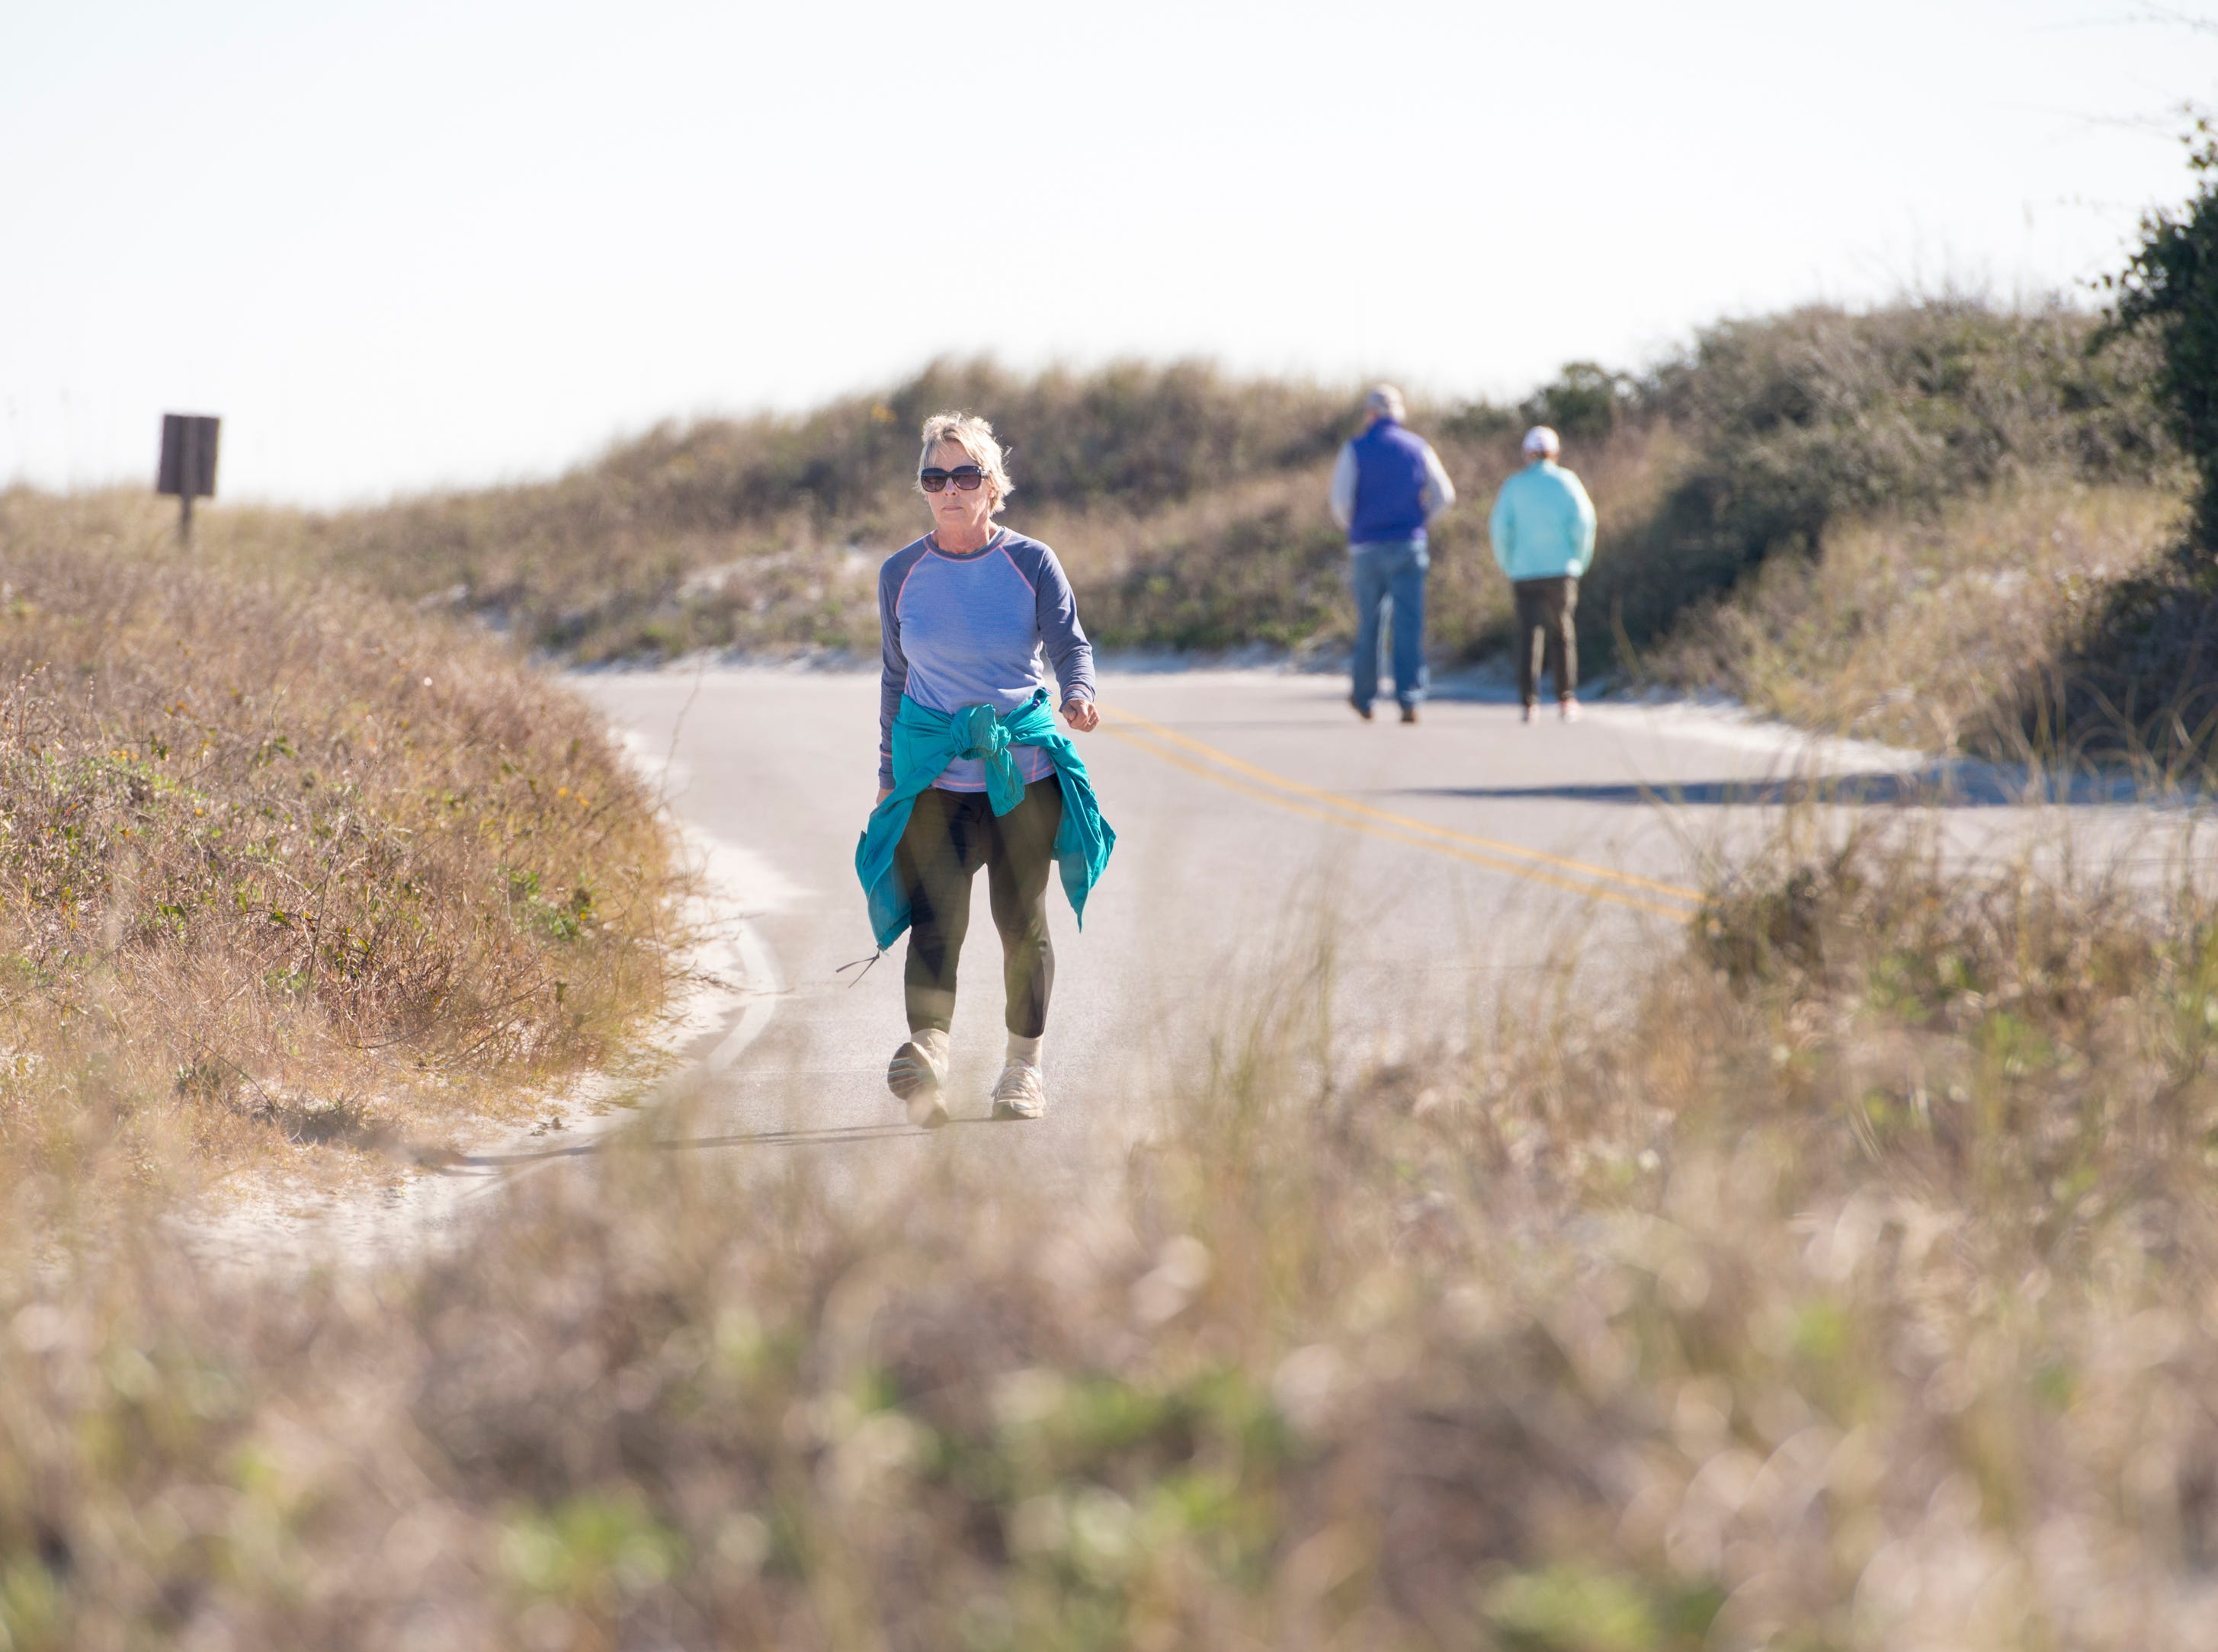 Marcia Ballah, left, walks along the road at Gulf Islands National Seashore's Rosamond Johnson Beach in Perdido Key on Friday, January 11, 2019.  The National Park is closed due to the federal government shutdown.